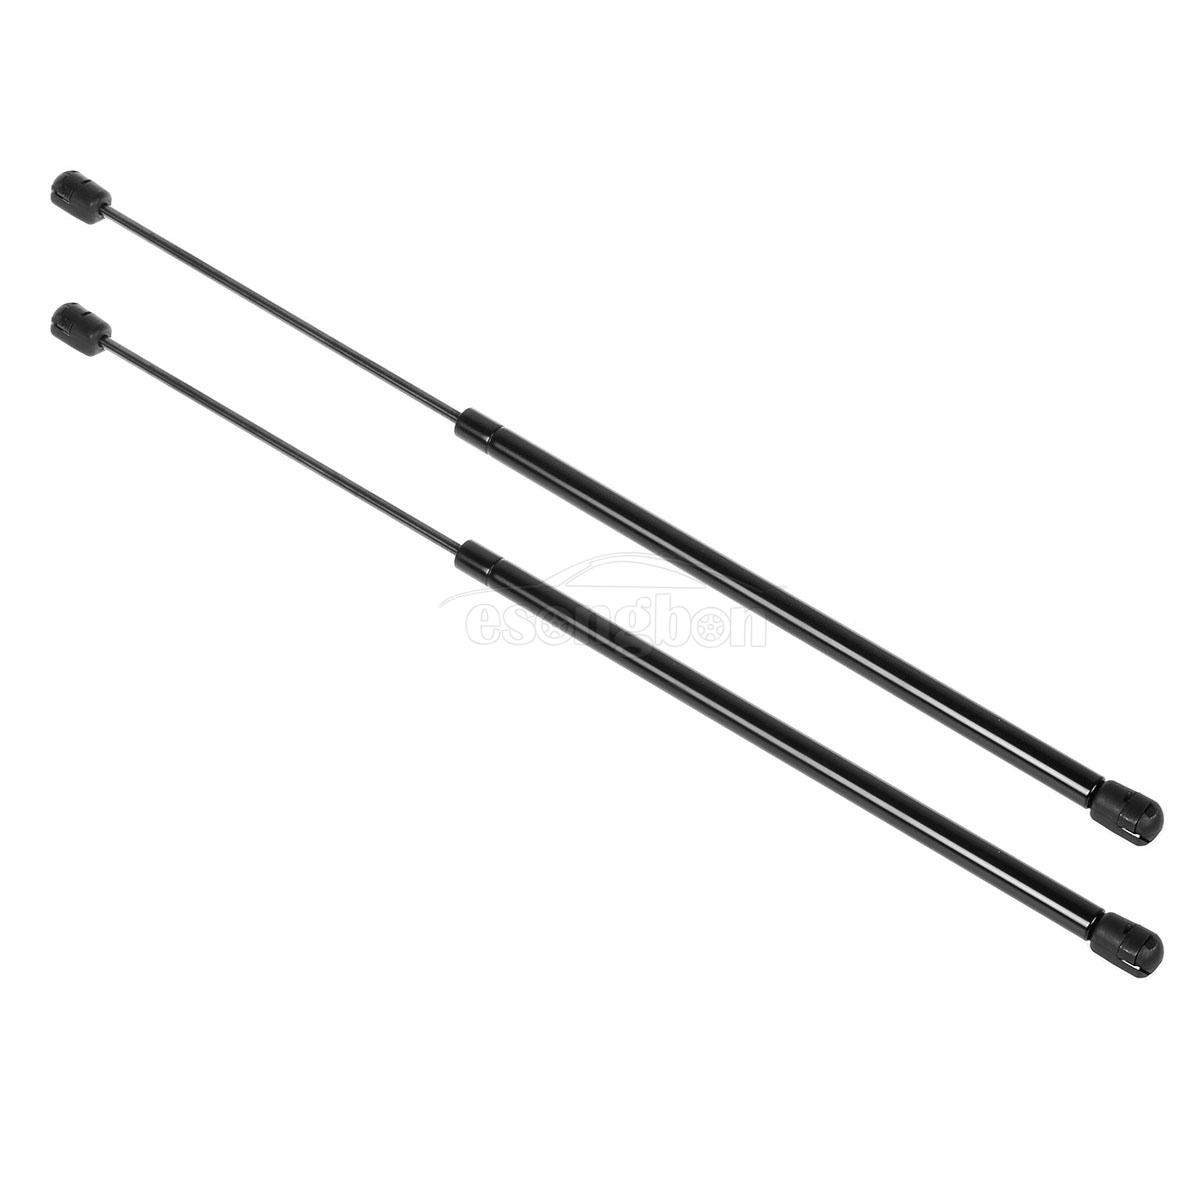 For 93 97 Chevrolet Camaro Hood Lift Support Shock Strut